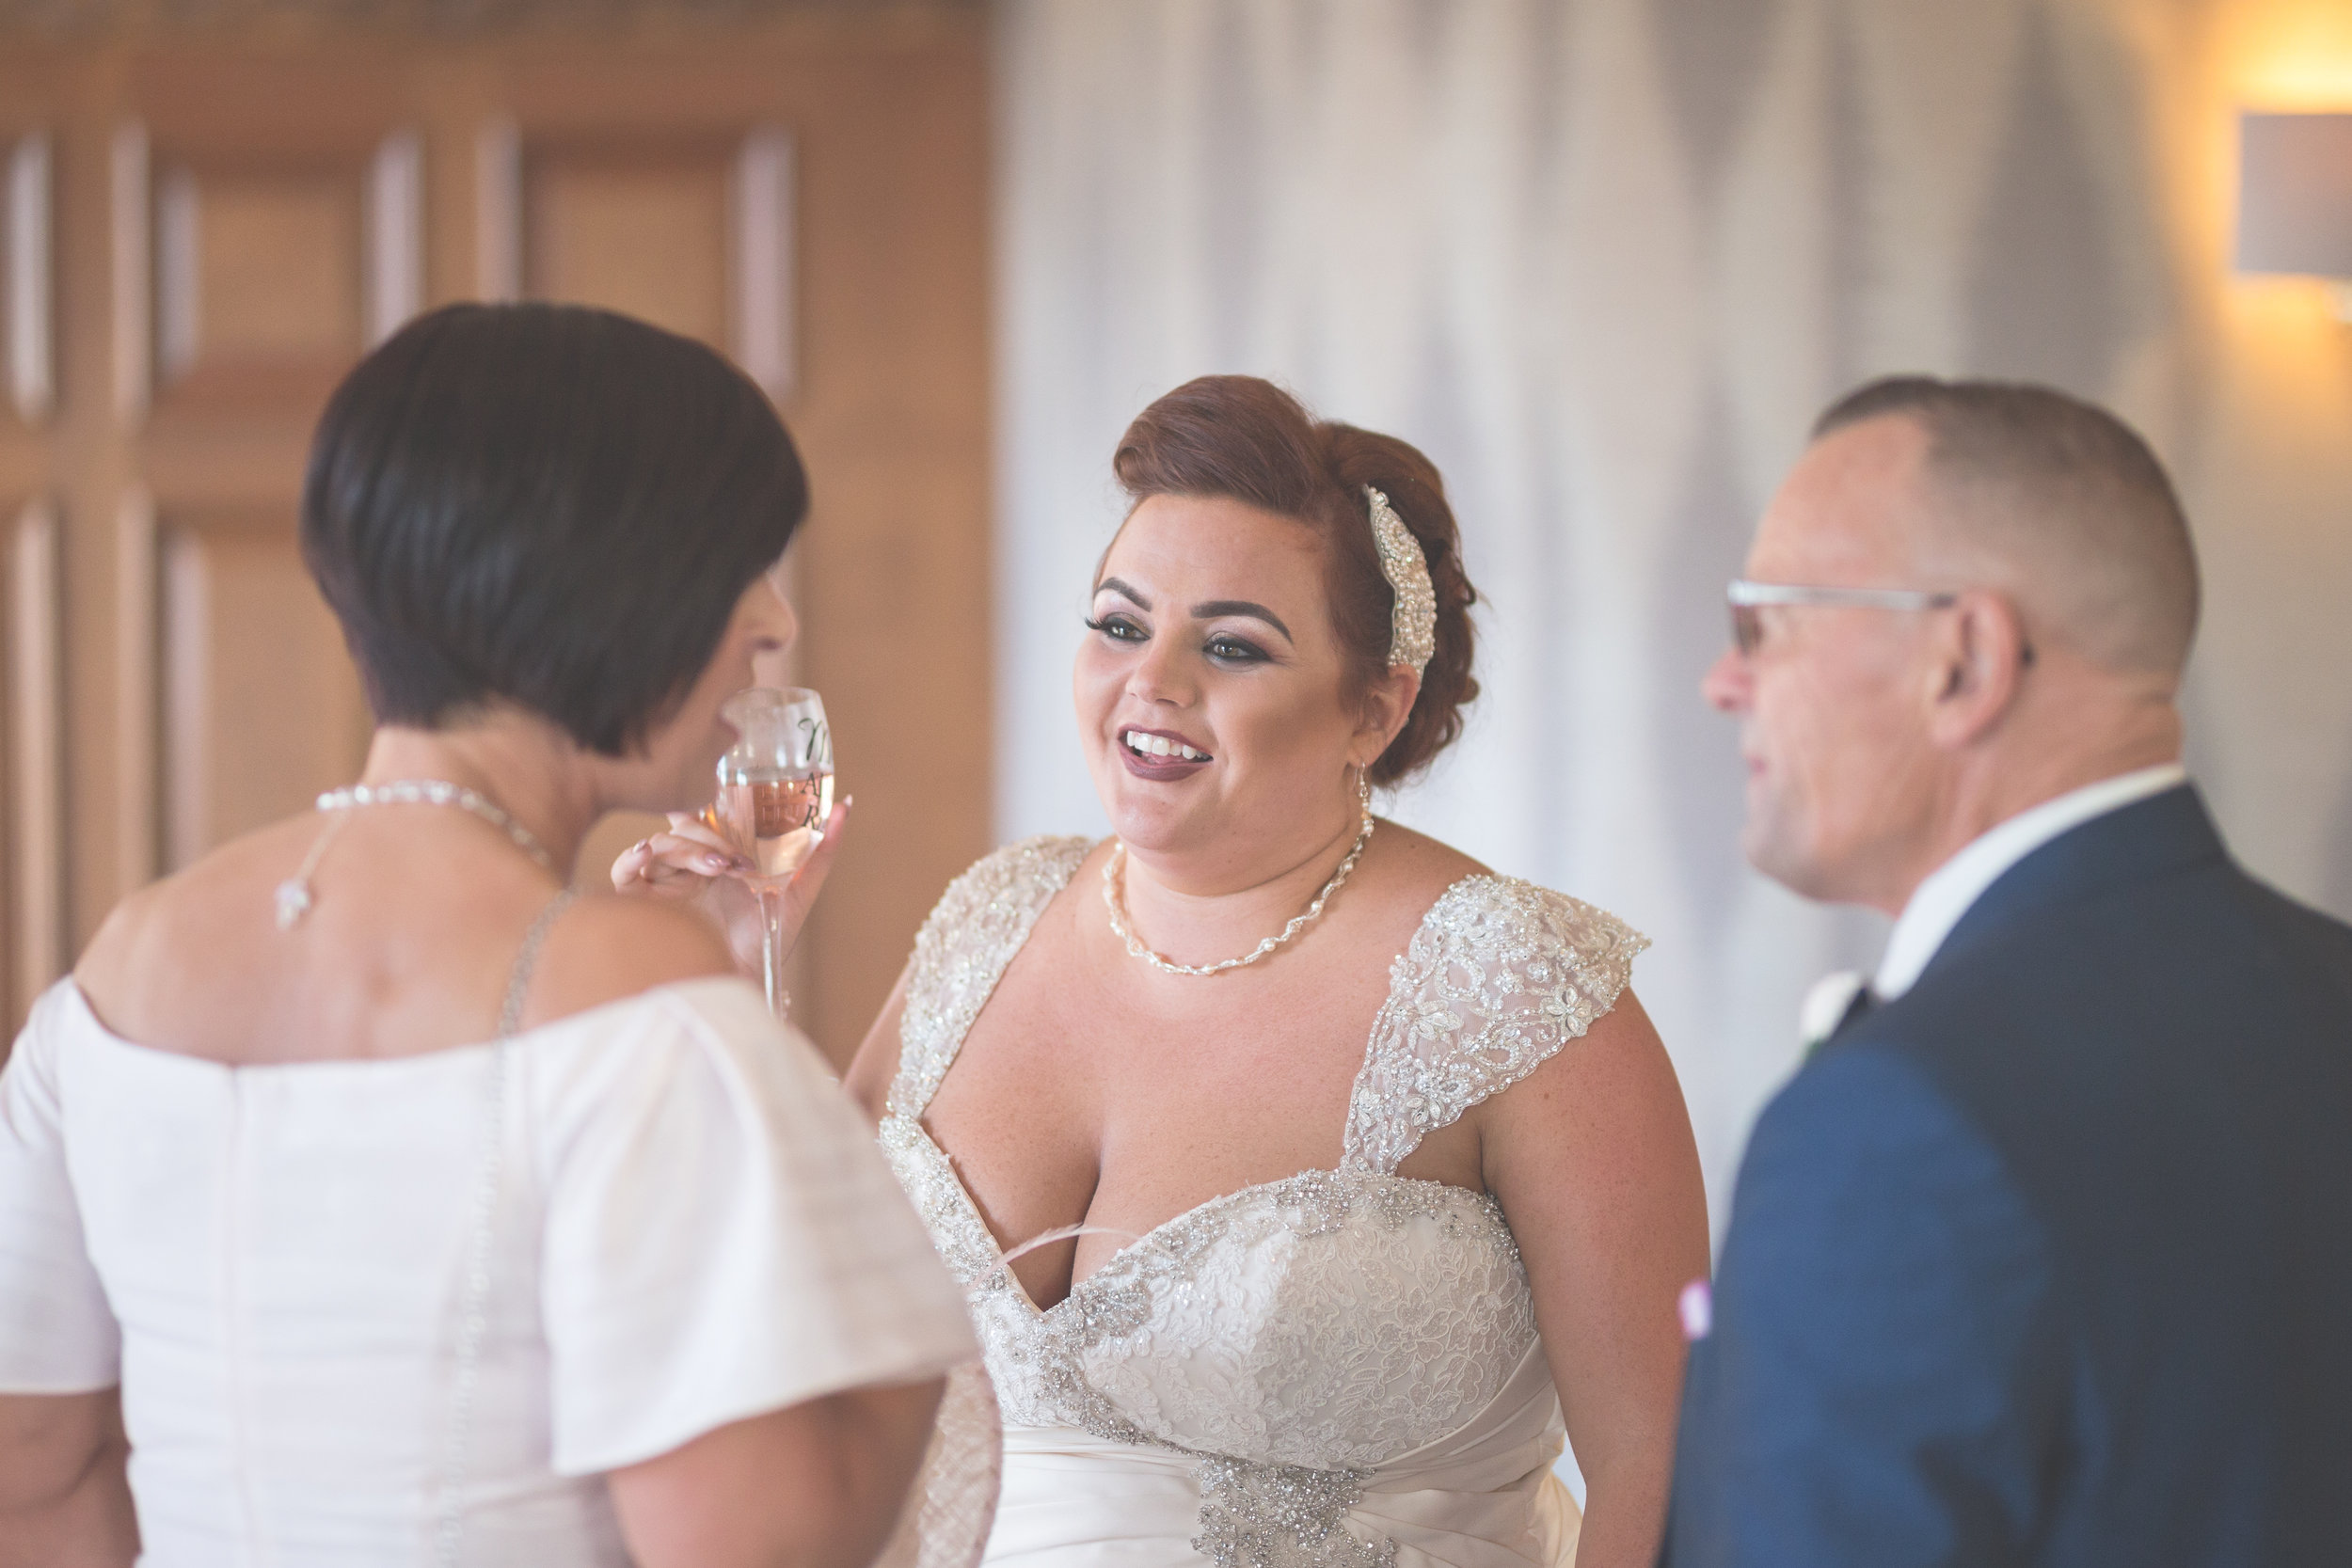 Antoinette & Stephen - Speeches | Brian McEwan Photography | Wedding Photographer Northern Ireland 150.jpg